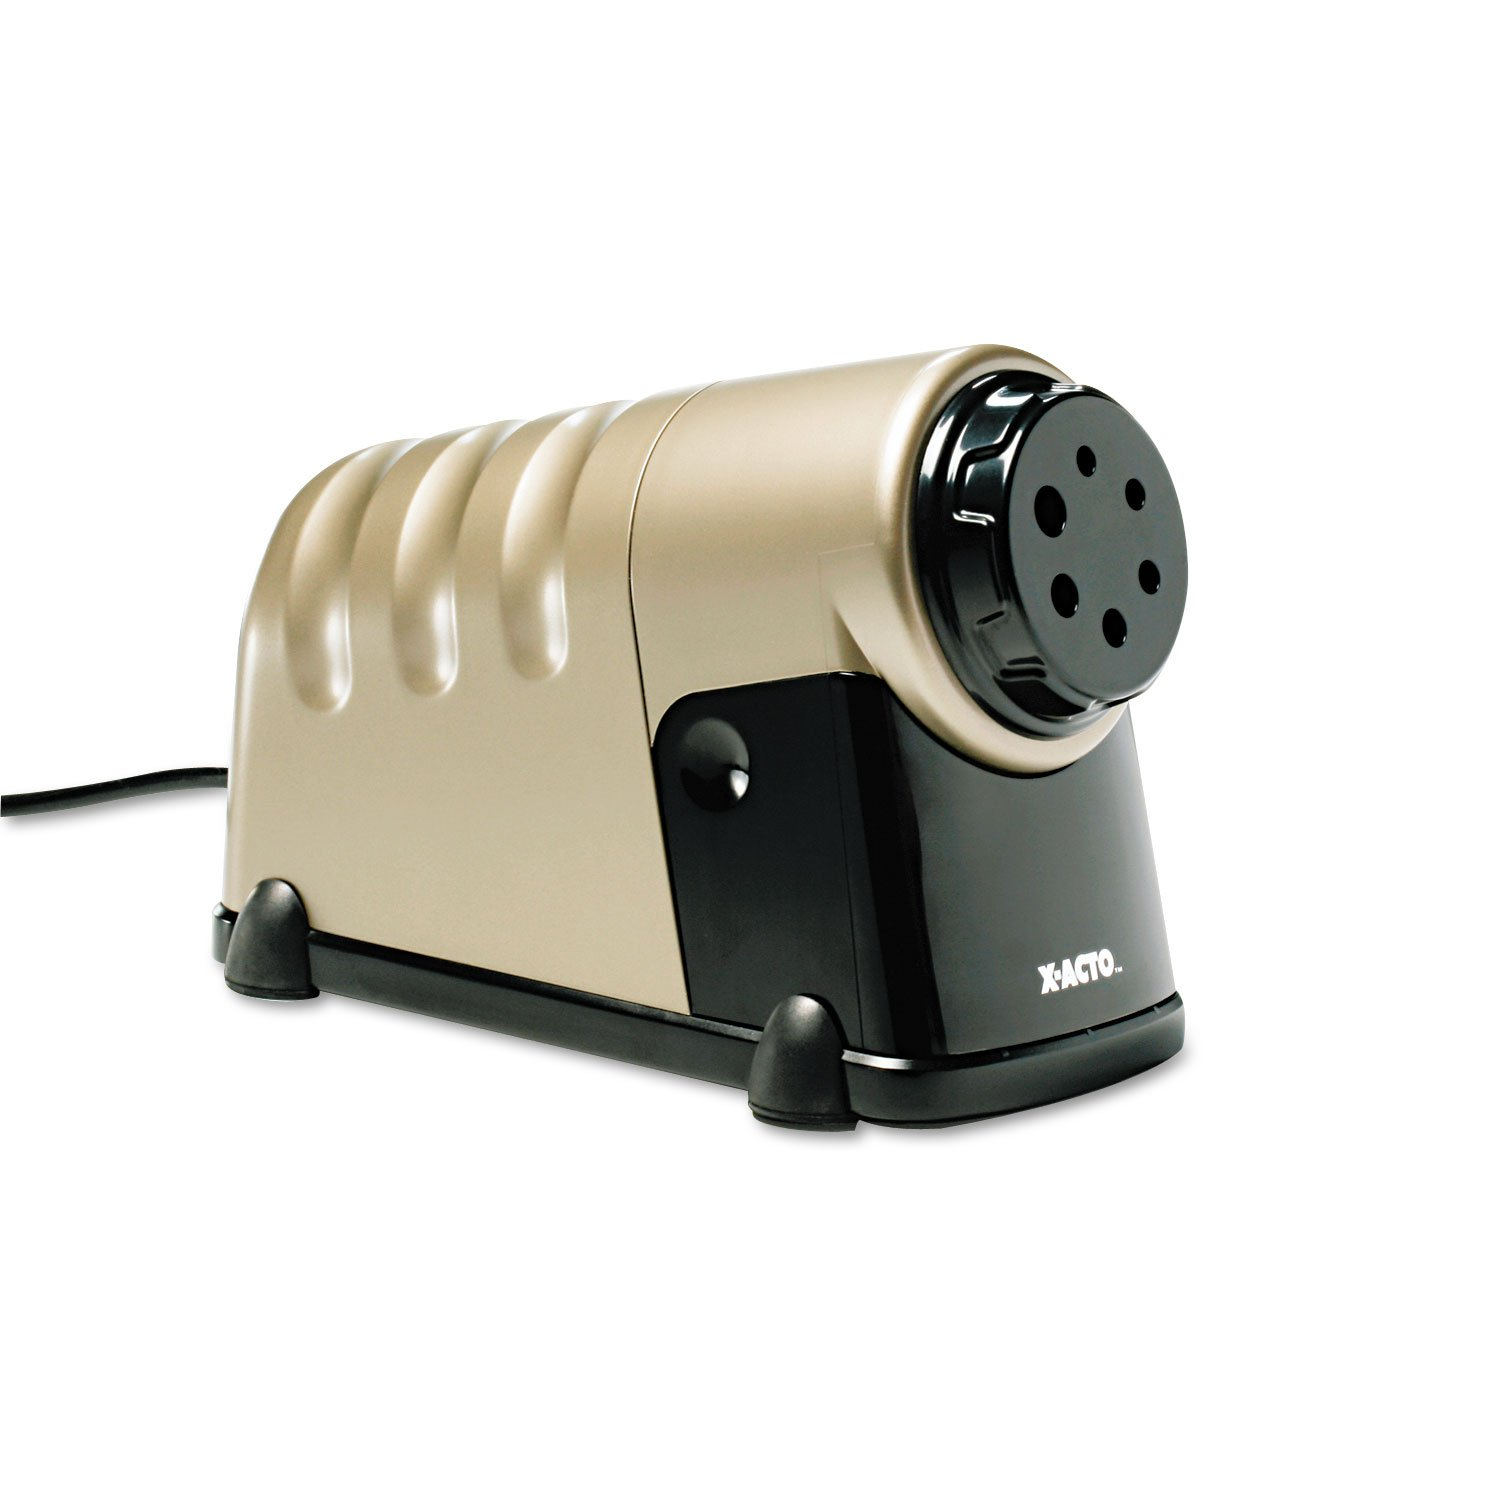 X-ACTO 1606 High-Volume Commercial Desktop Electric Pencil Sharpener, Beige by Office Realm